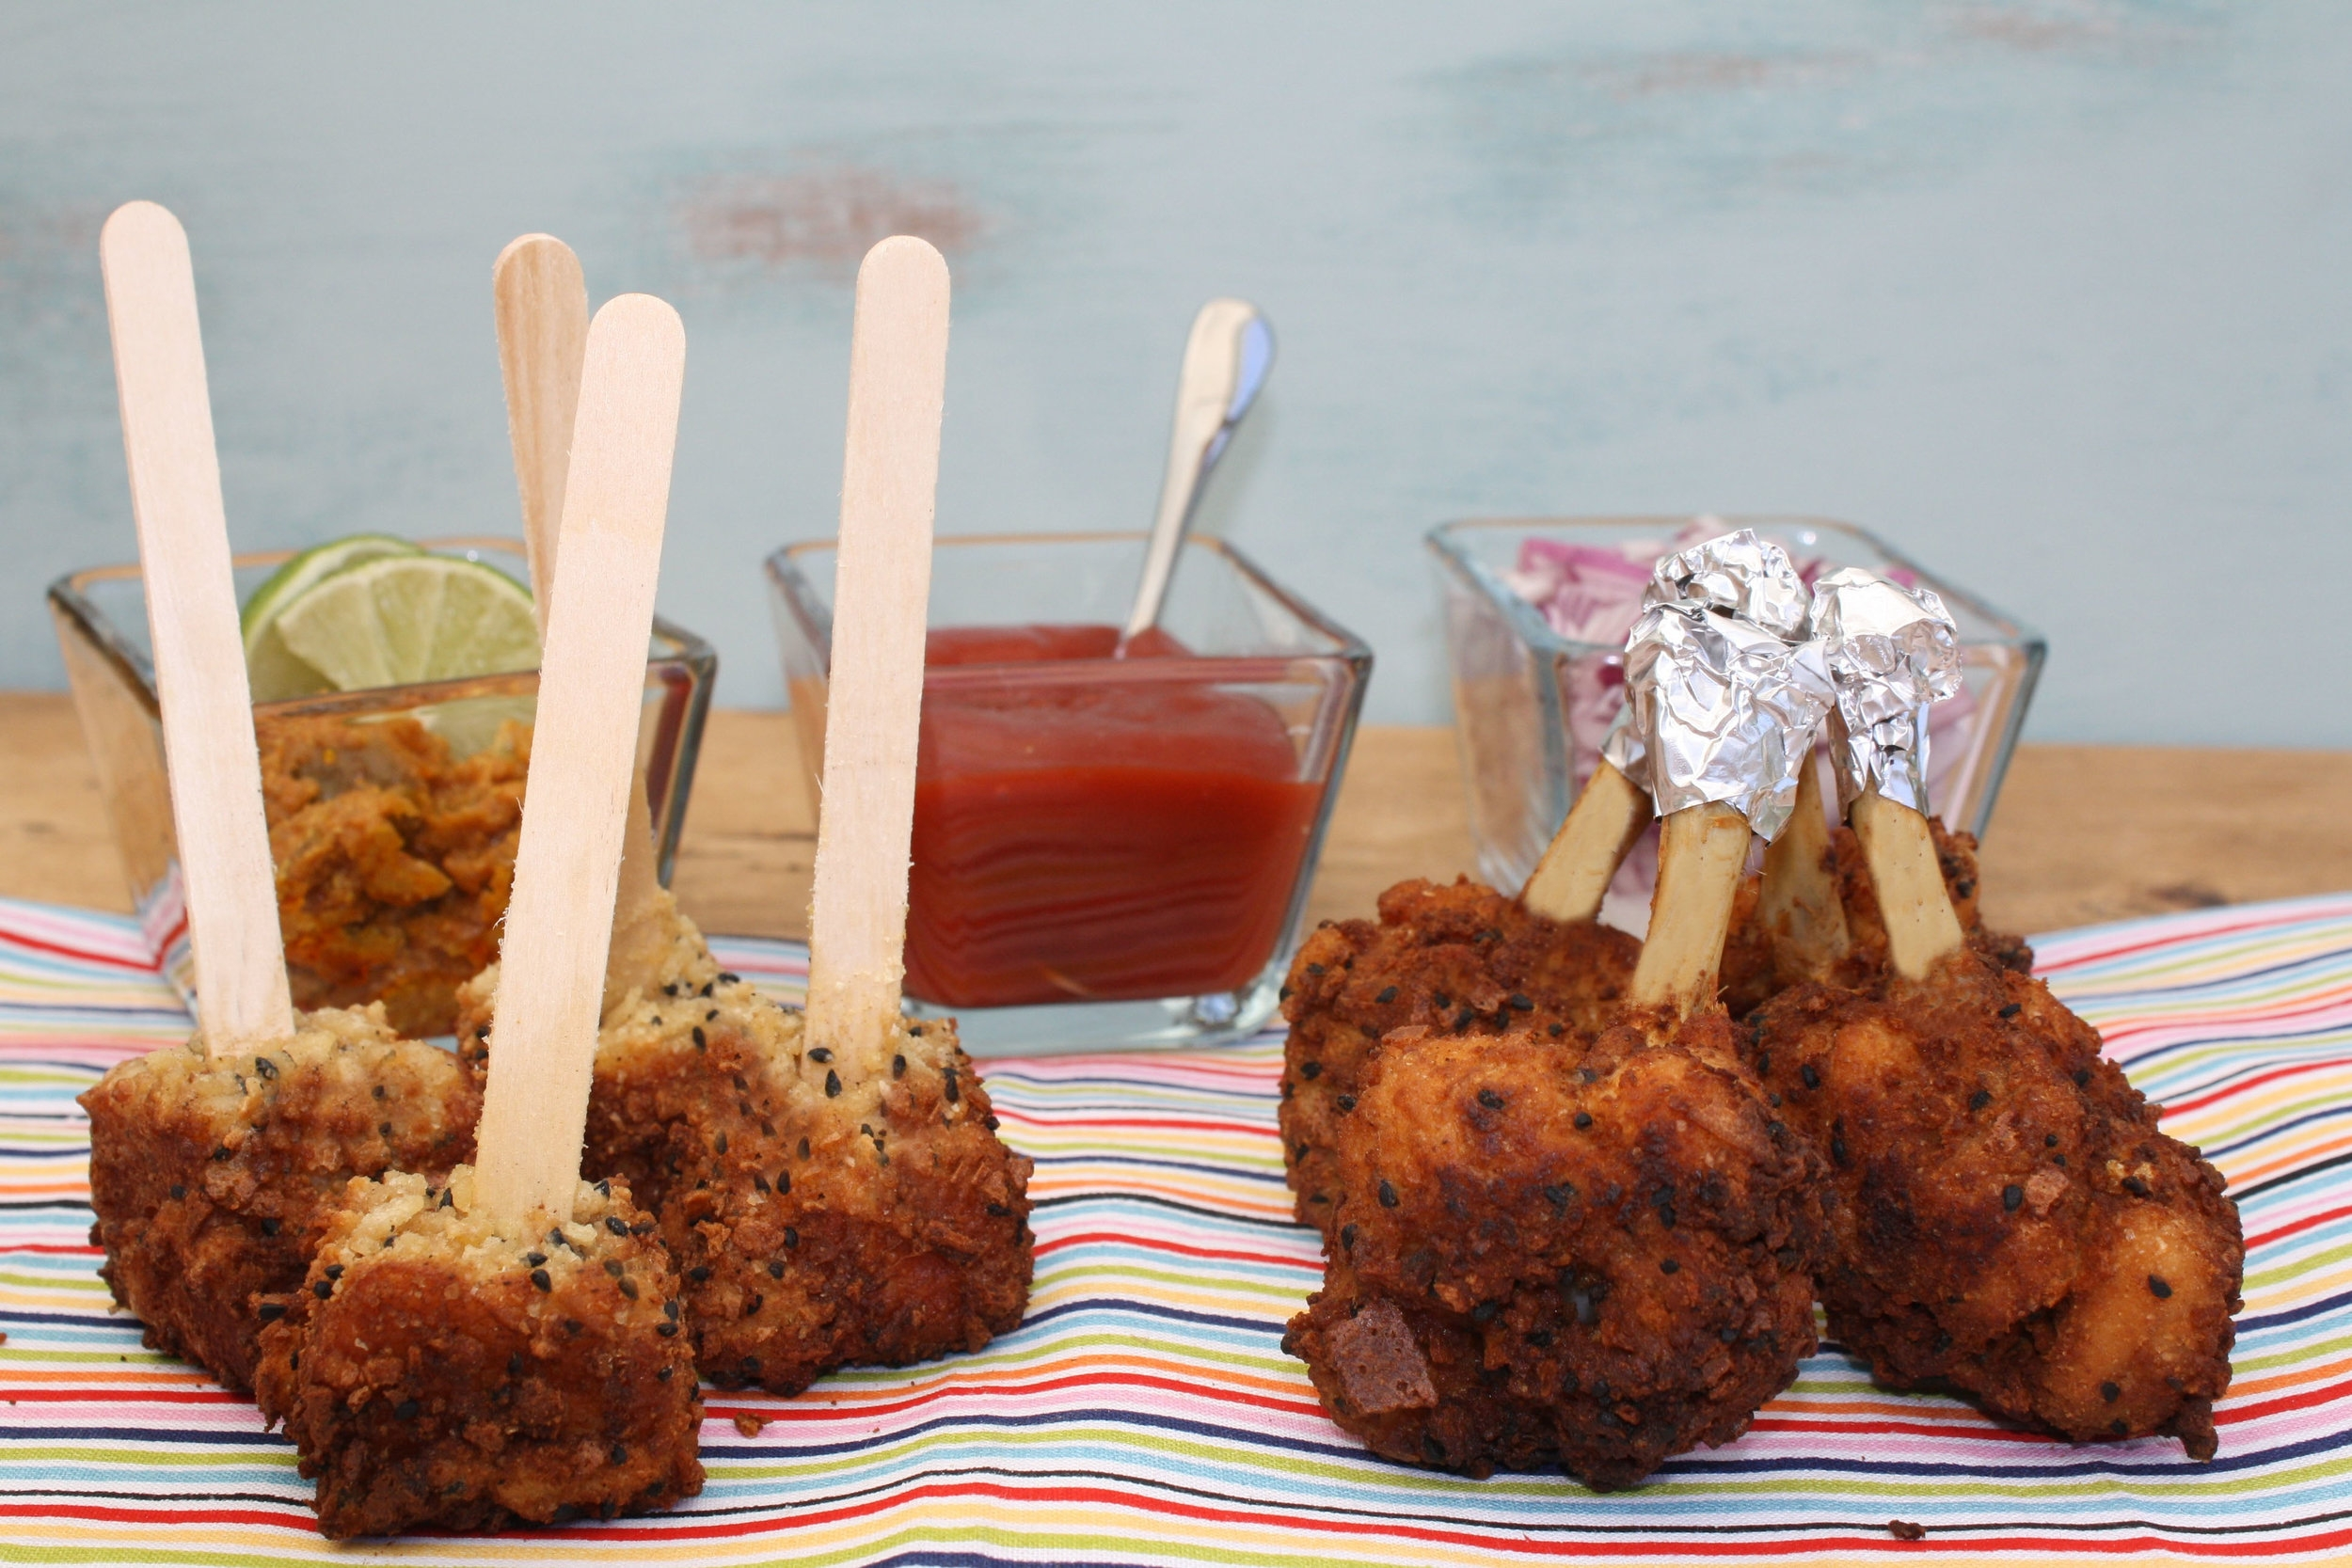 chick and paneer lollipops no text.jpg